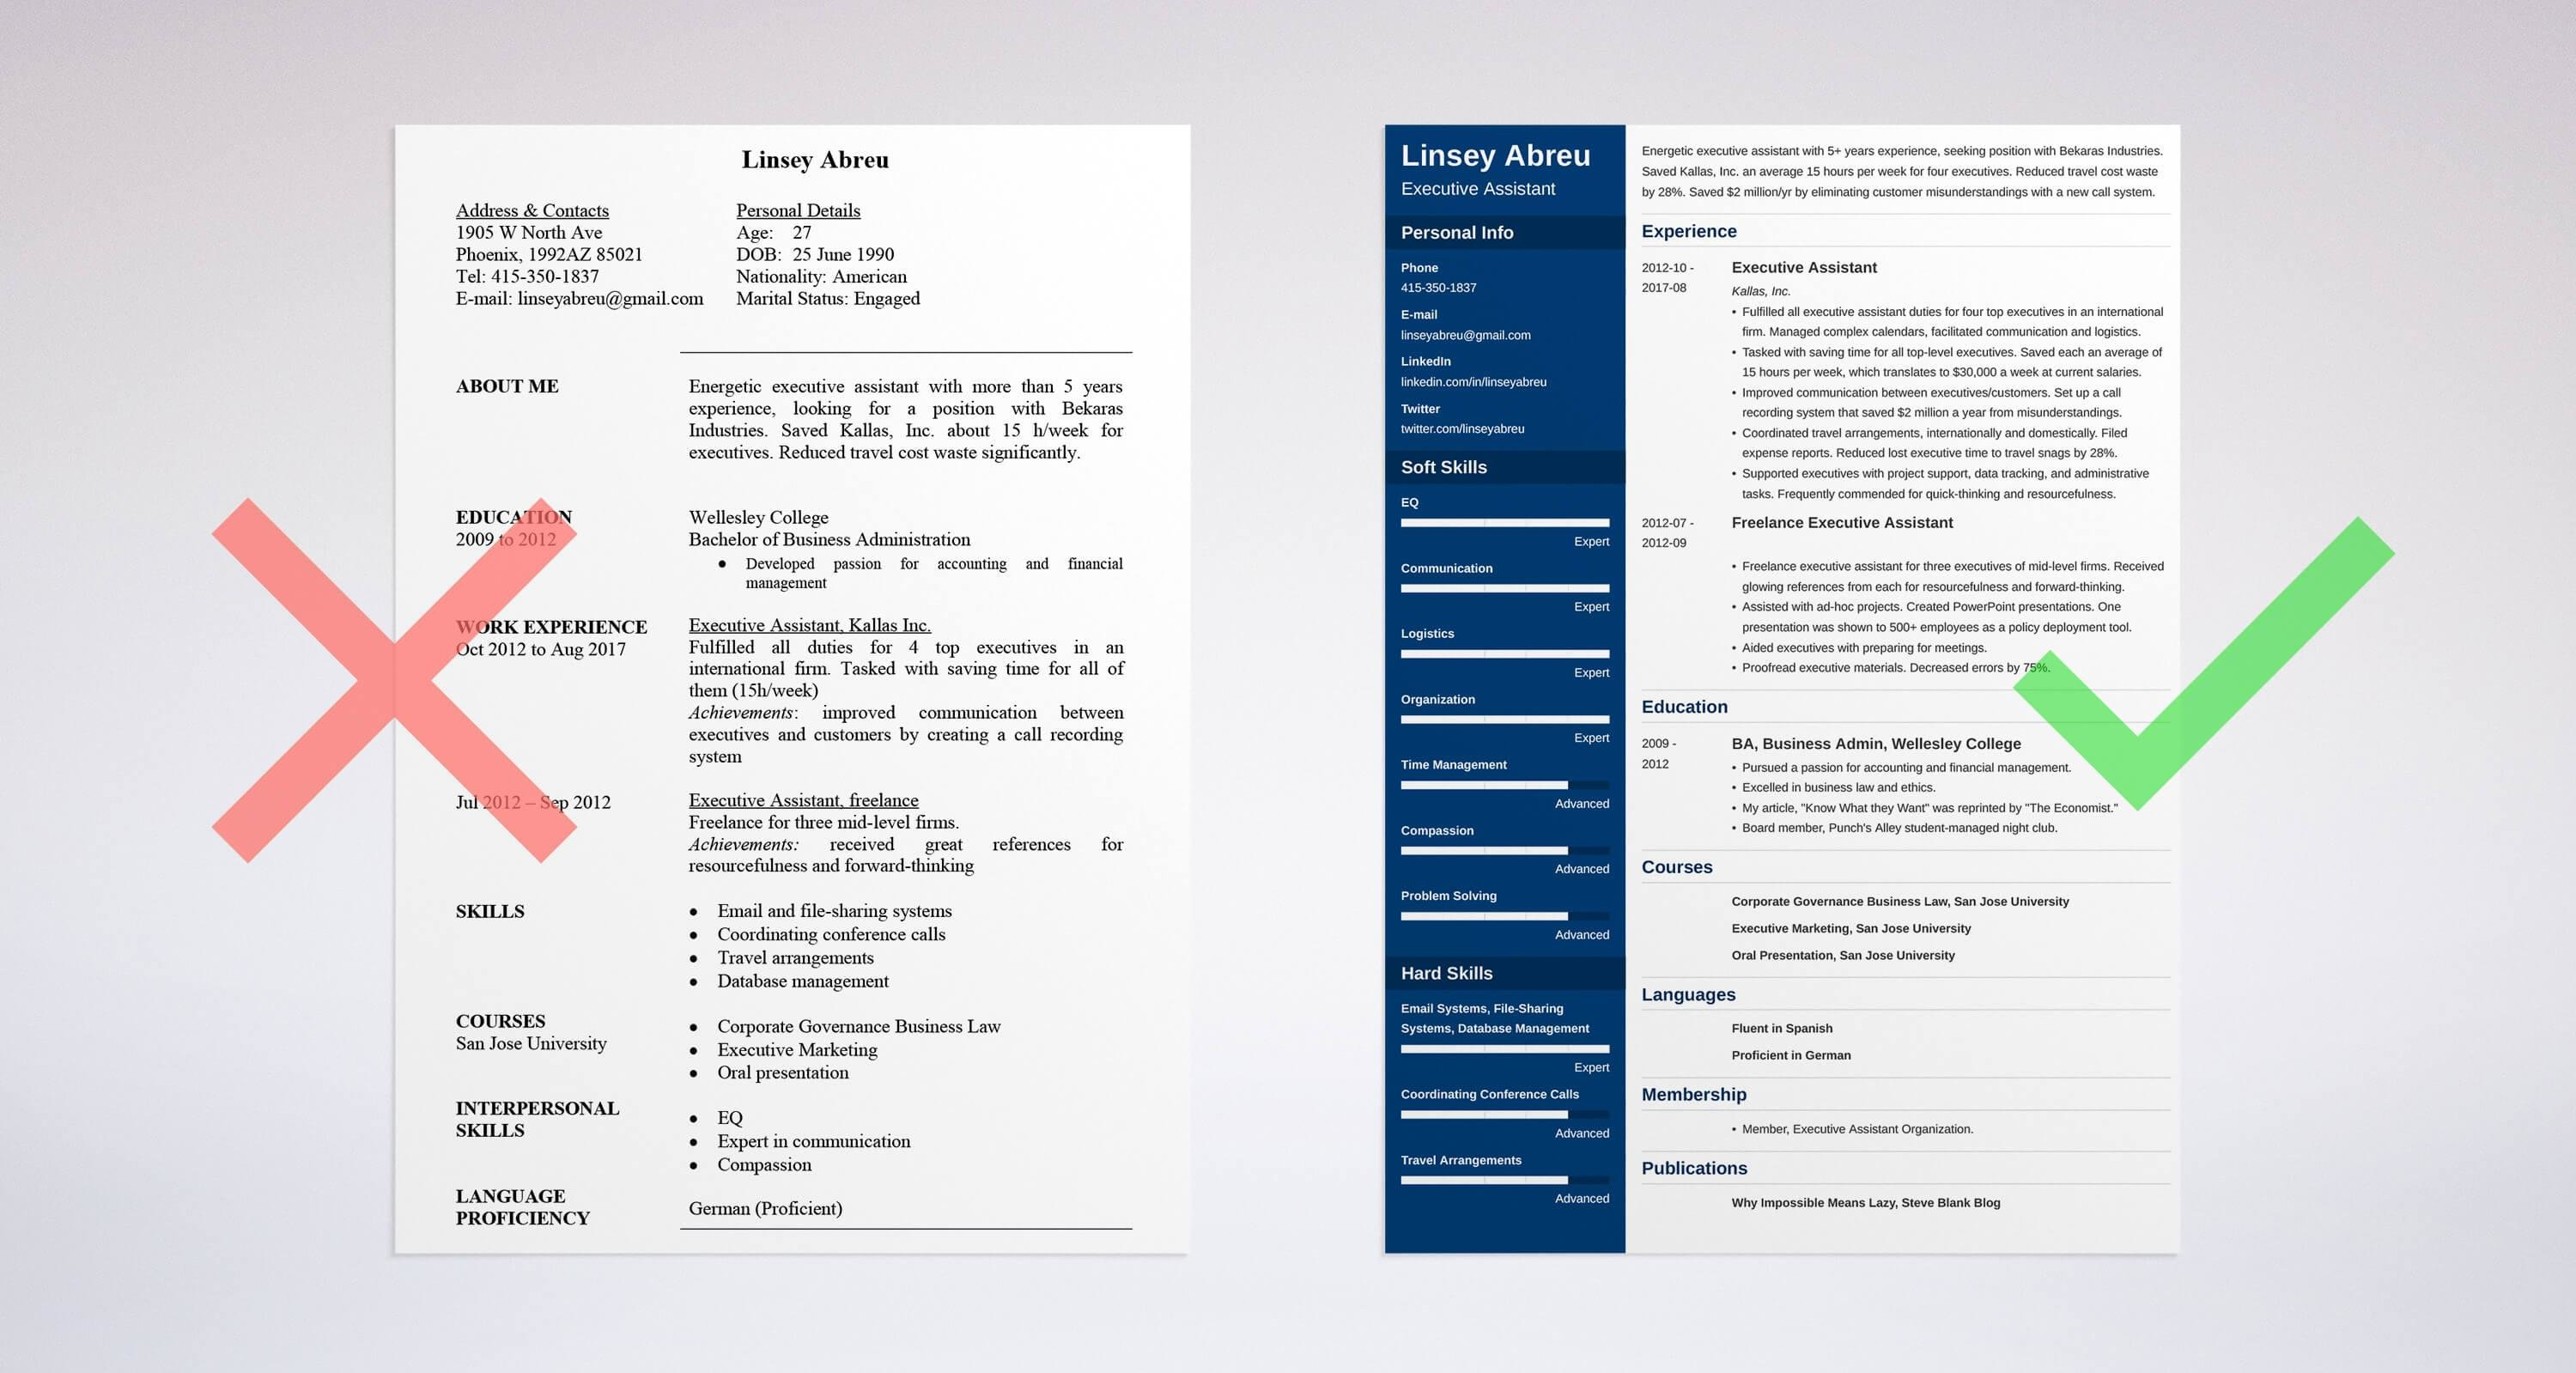 Executive Assistant Resume Sample & plete Guide [20 Examples]